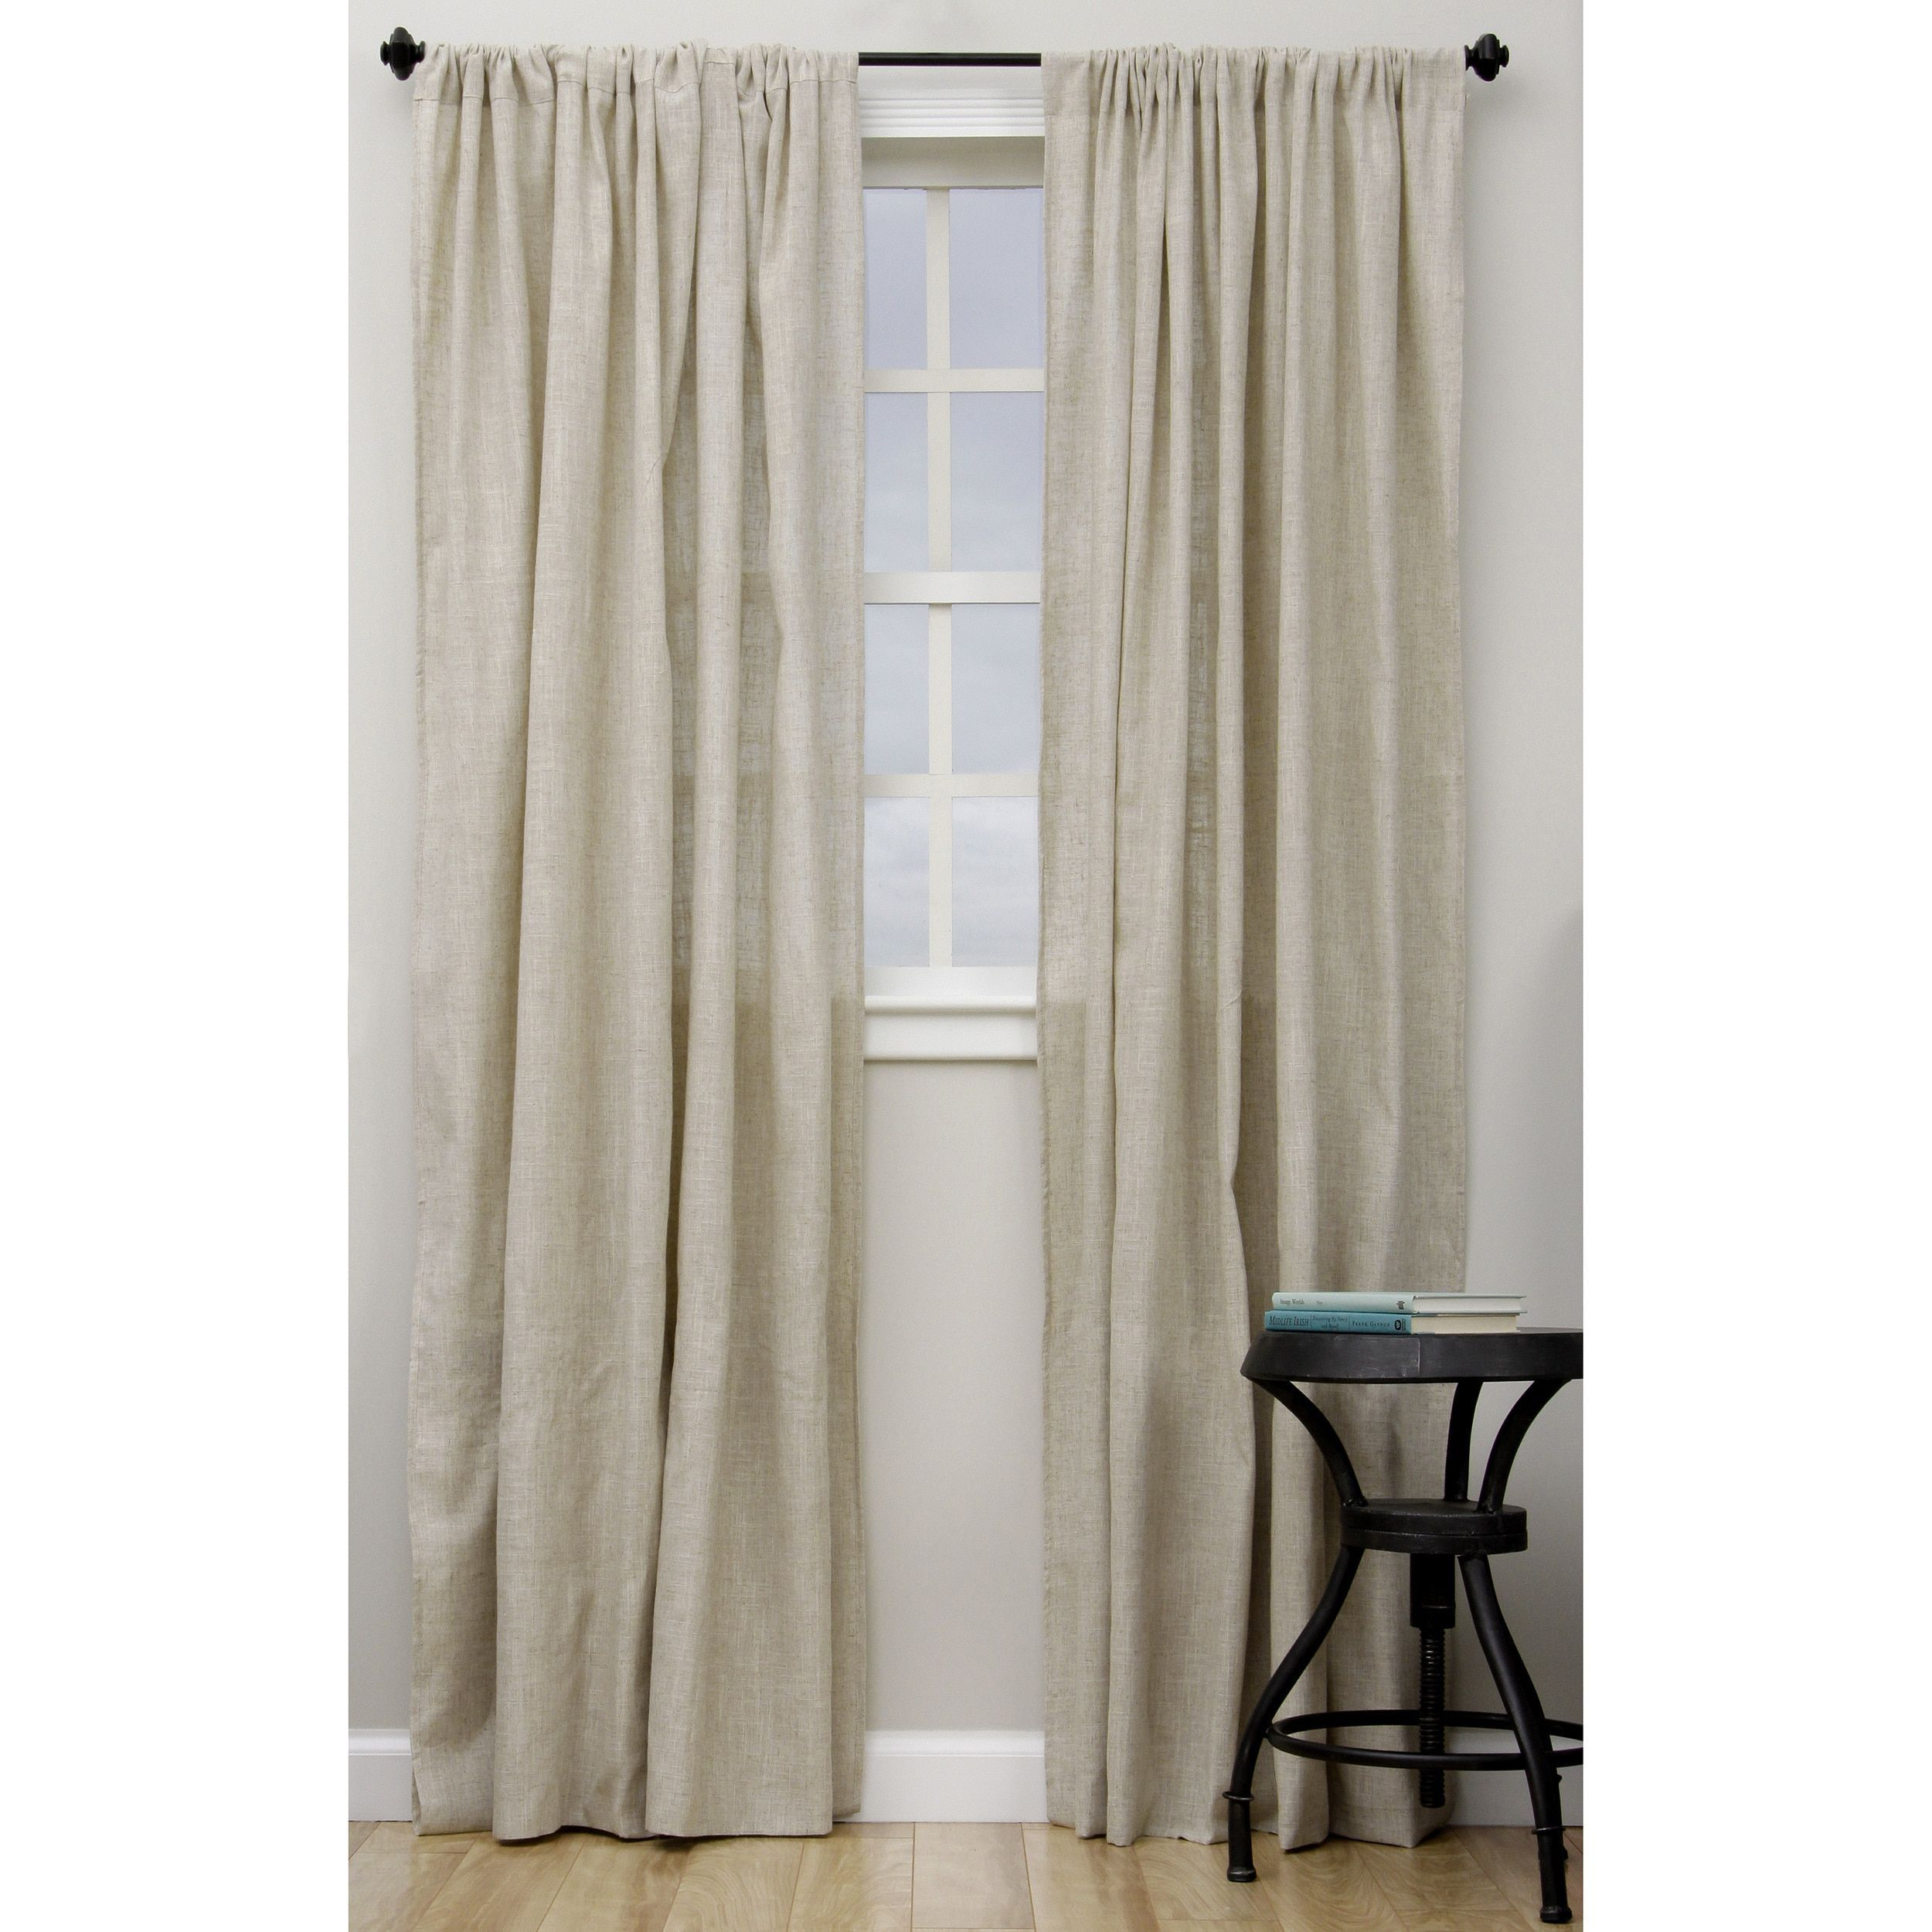 Classic Linen Blend Curtain Panel 108 Inch Curtains Panel Curtains Classic Linen